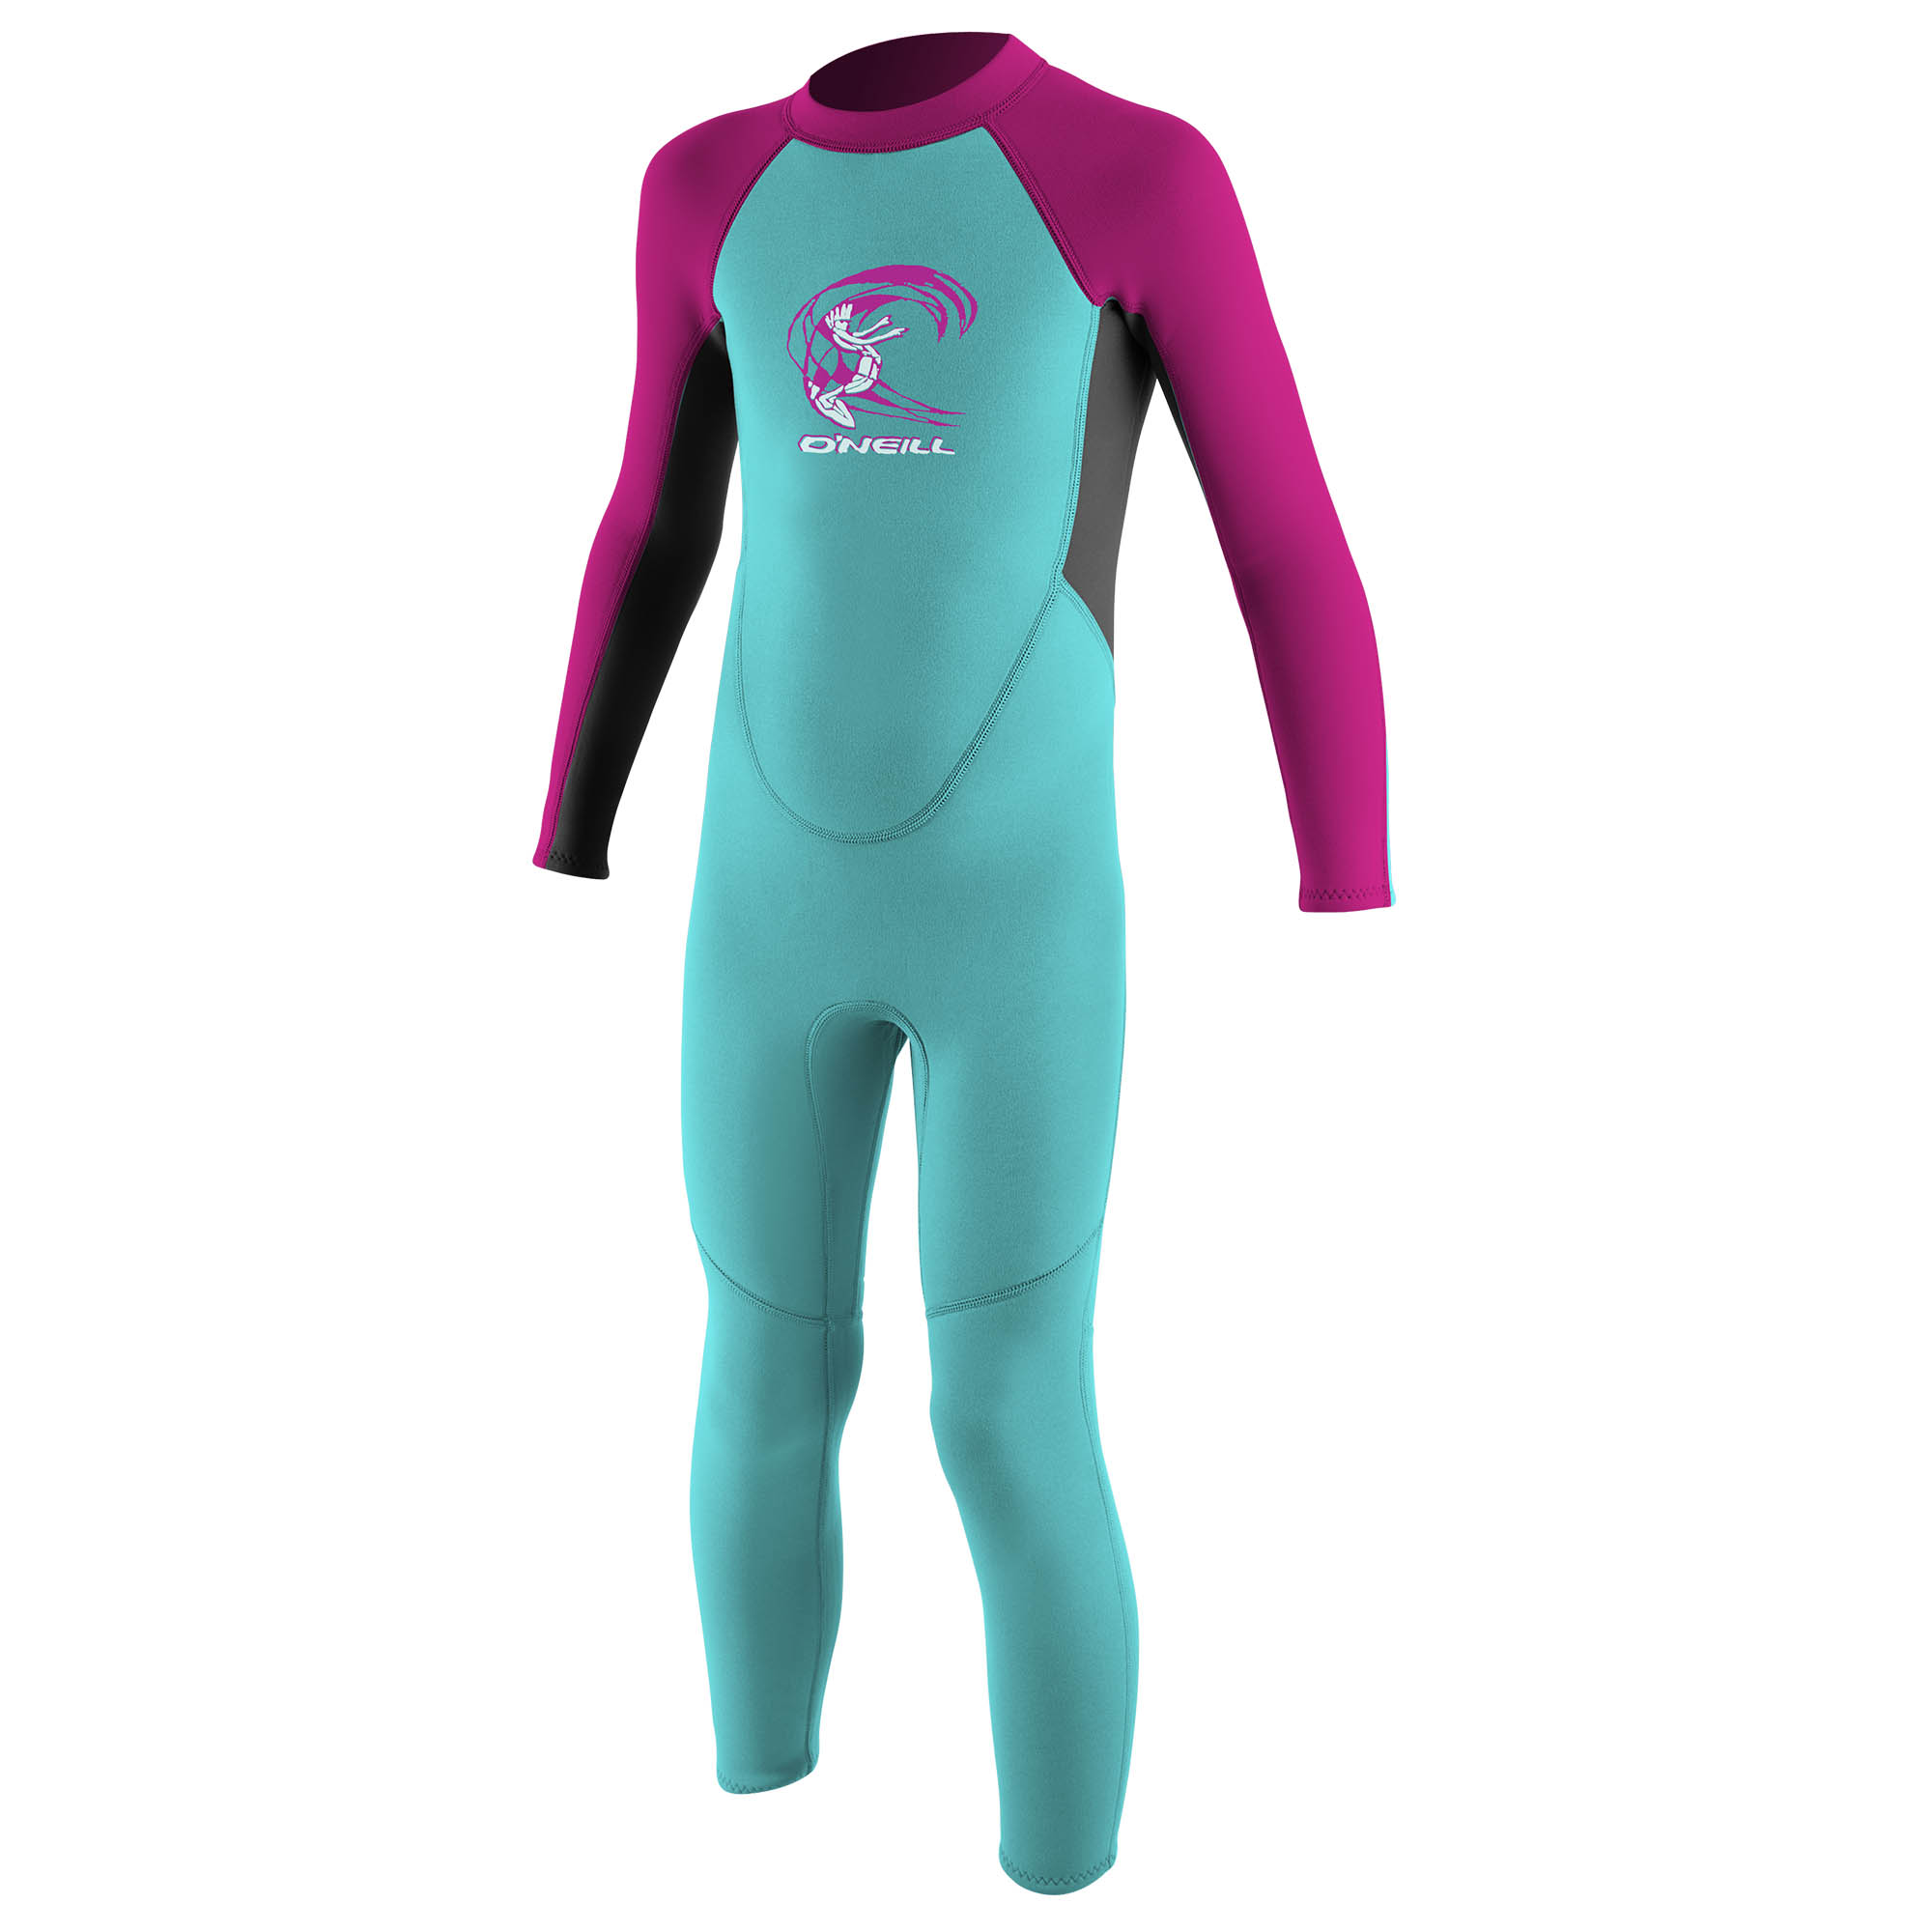 O'NEILL TODDLER REACTOR-2 2MM BACK ZIP FULL WETSUIT (Multiple Colors and Sizes)